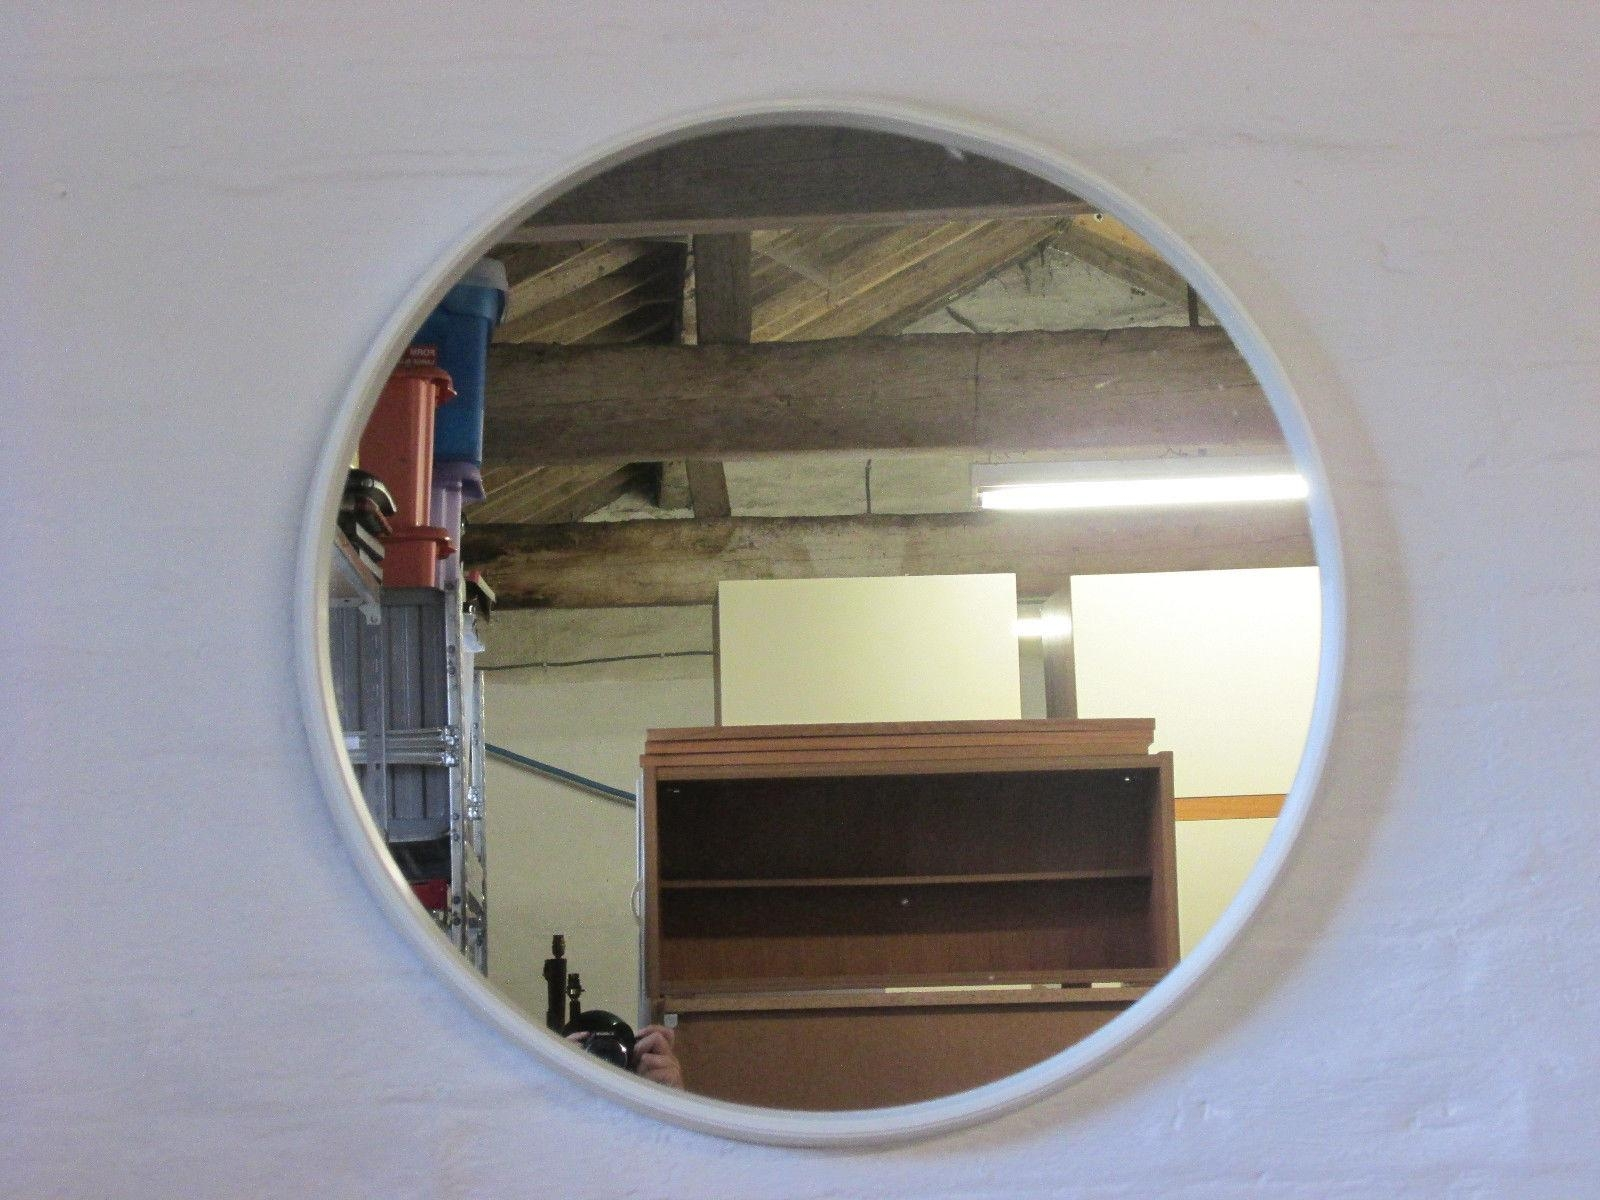 Retro 1960S/1970S Schreiber Nova Round White Framed Wall Mirror Intended For Retro Wall Mirrors (Image 14 of 20)